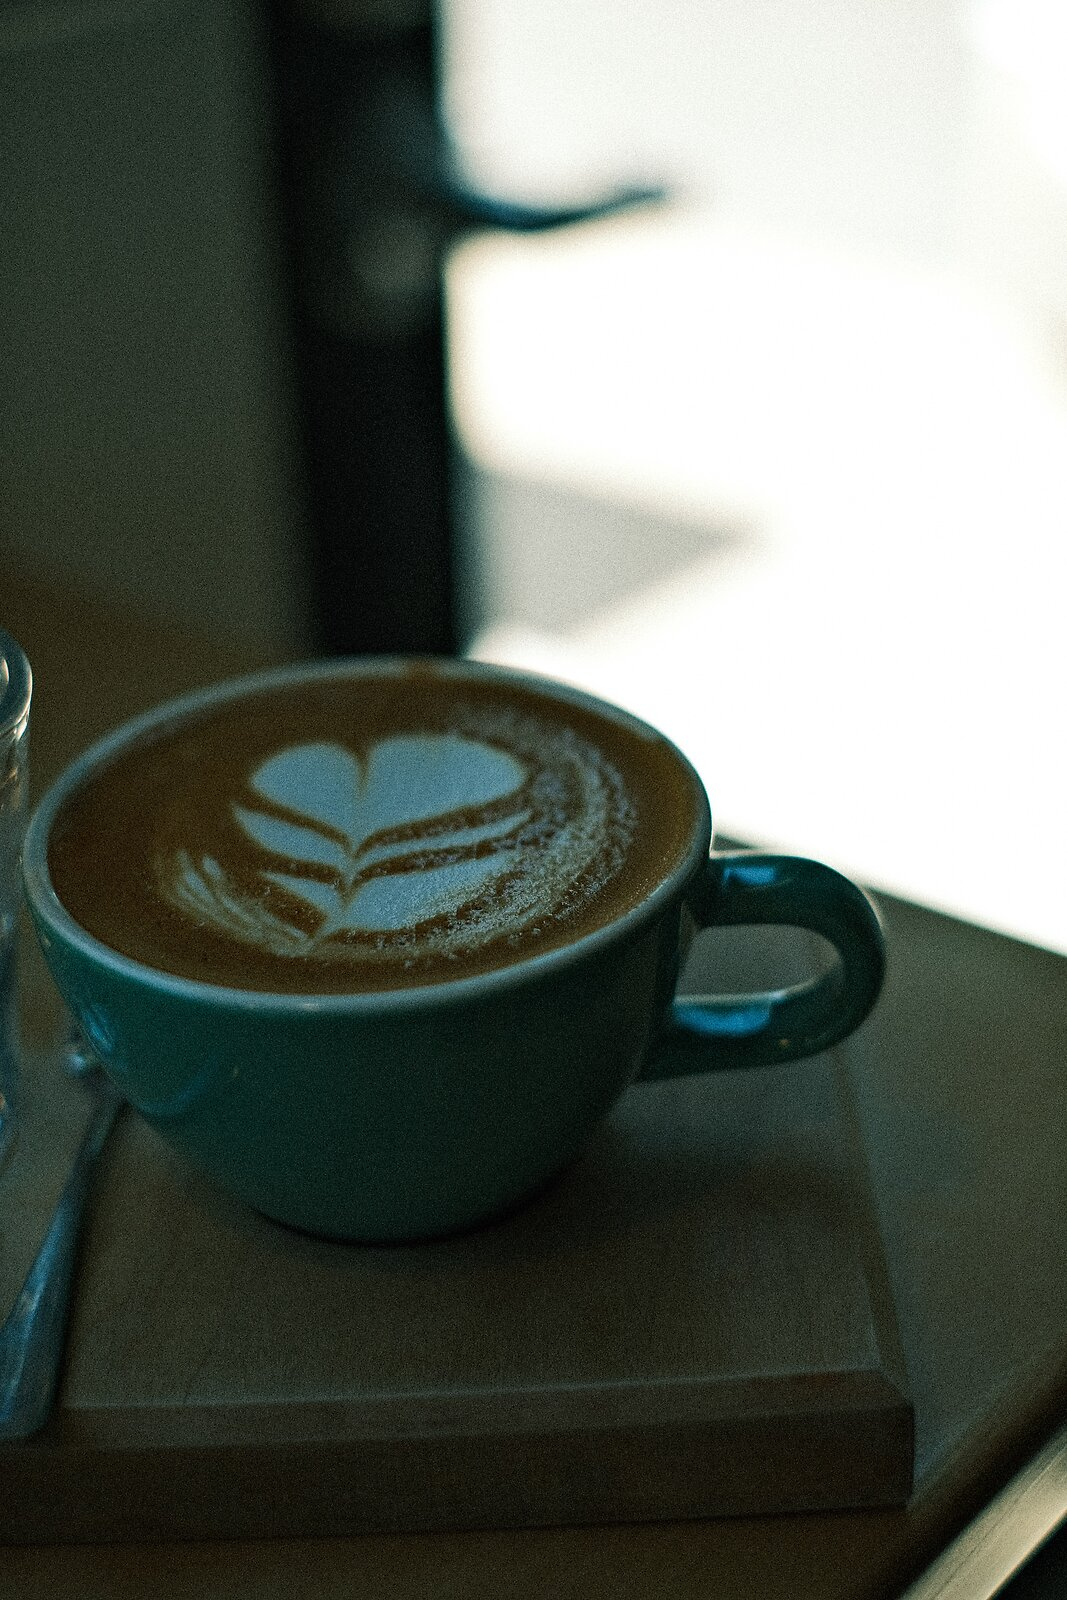 XPro3_July17_21_afternoon_cappuccino(classic.neg).jpg